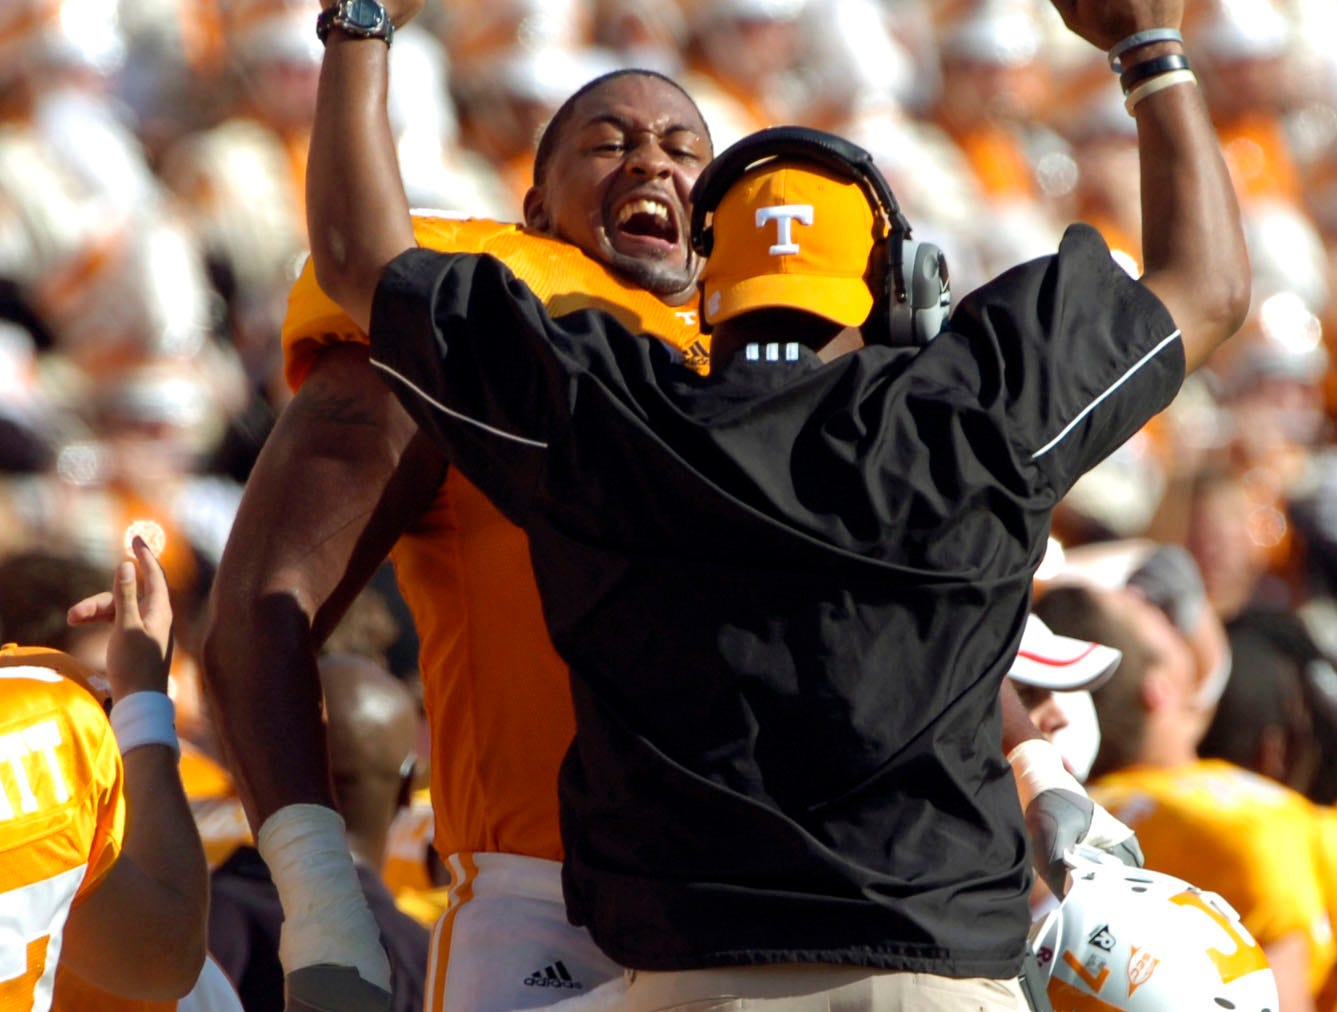 Tennessee offensive lineman Ramon Foster celebrates a score against Georgia with assistant coach Trooper Taylor on Saturday at Neyland Stadium. The Vols beat 12th-ranked Georgia 35-14, improving to 3-2 for the season.  Photo by Michael Patrick/Knoxville News Sentinel